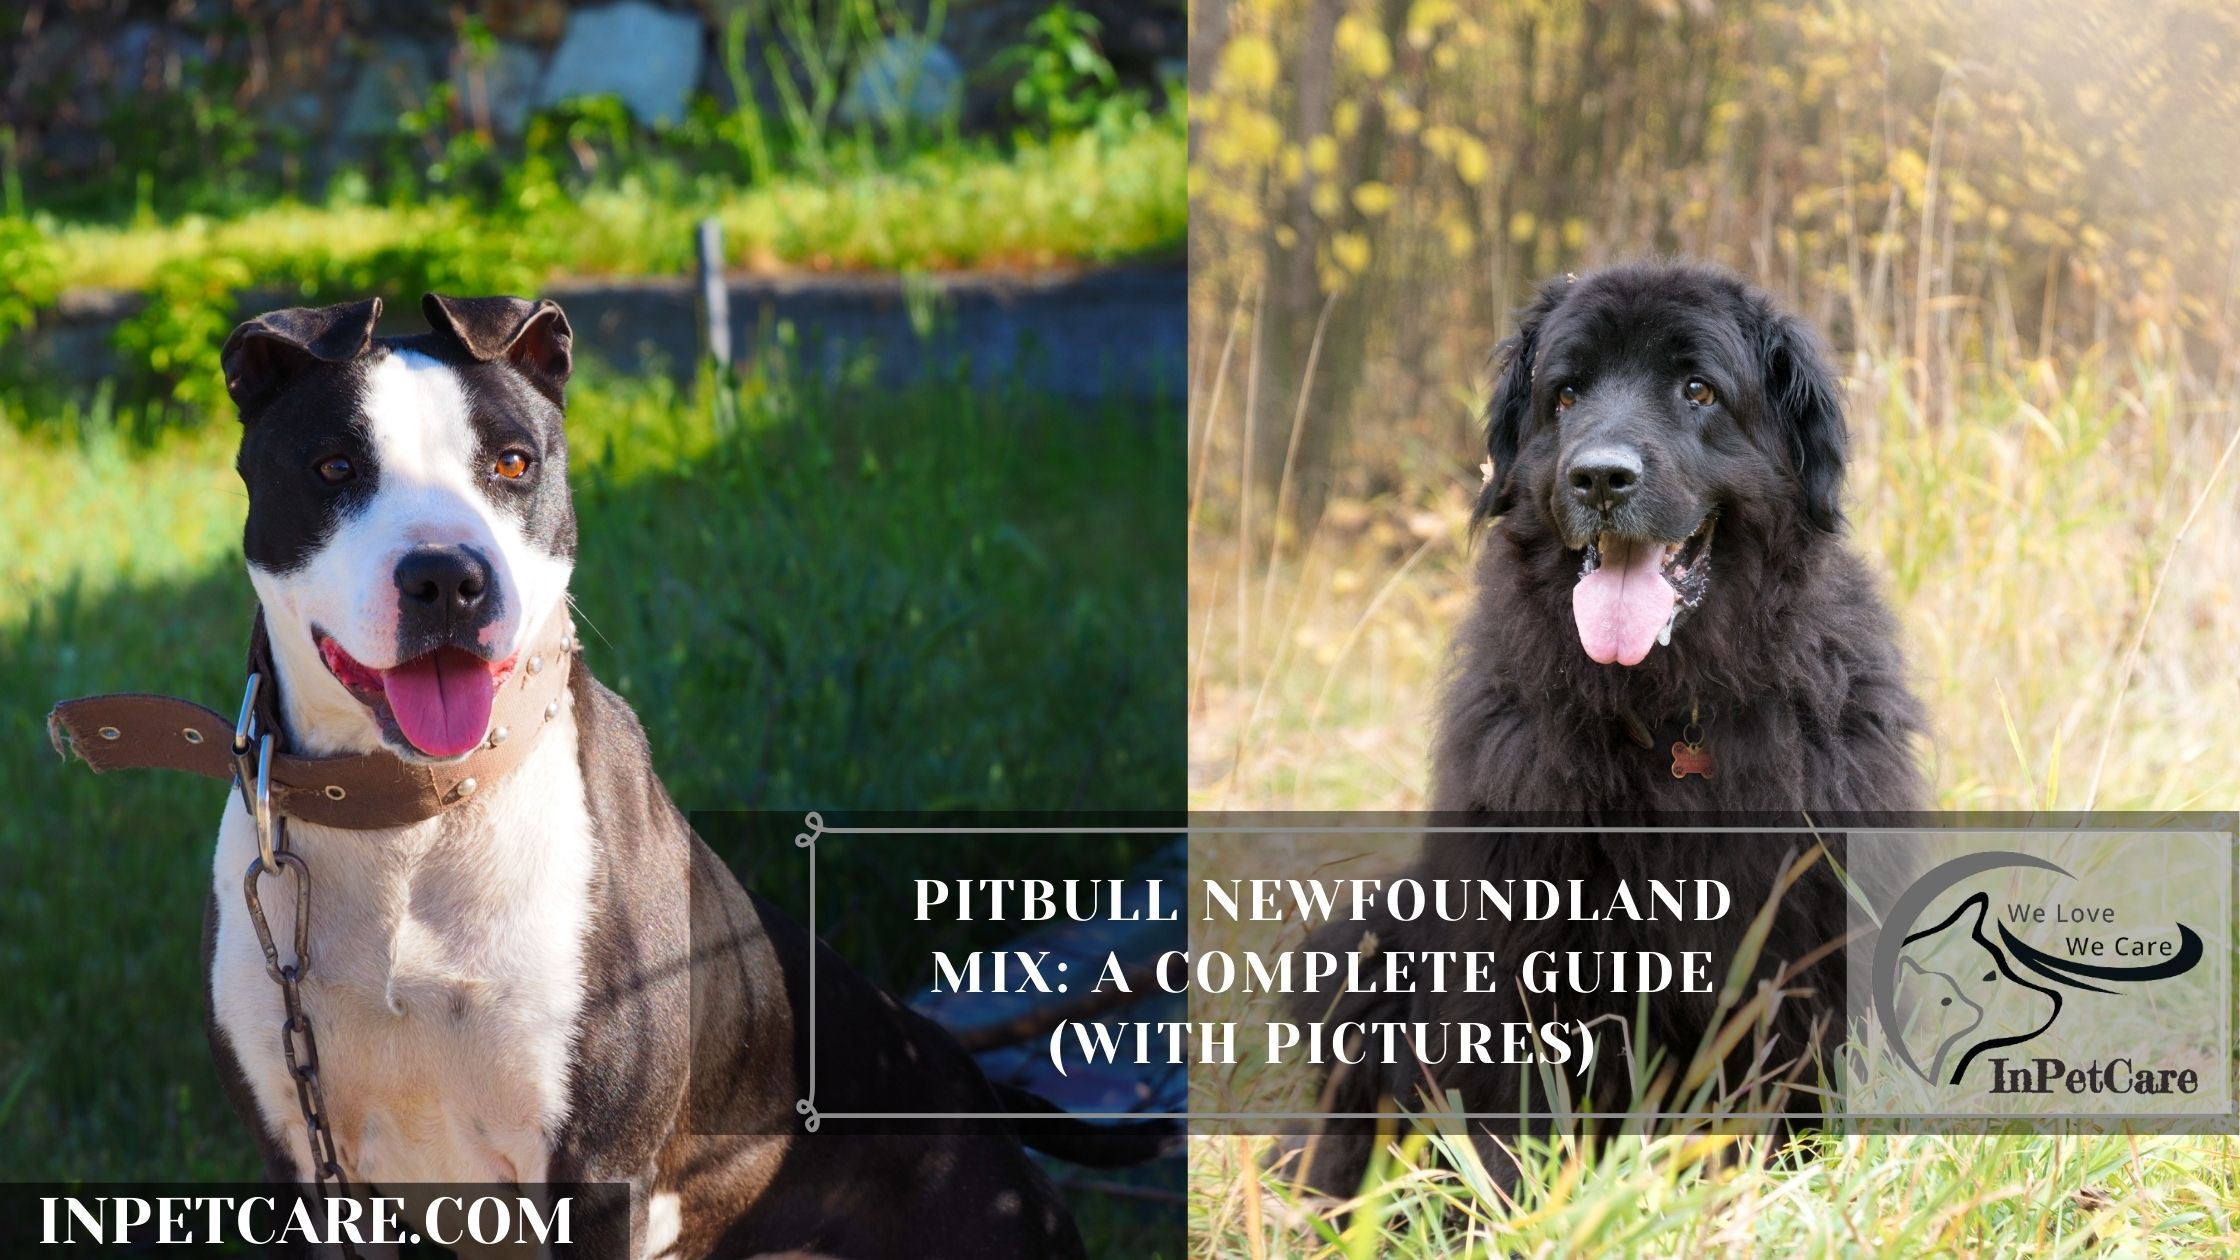 Pitbull Newfoundland Mix: A Complete Guide (With Pictures)